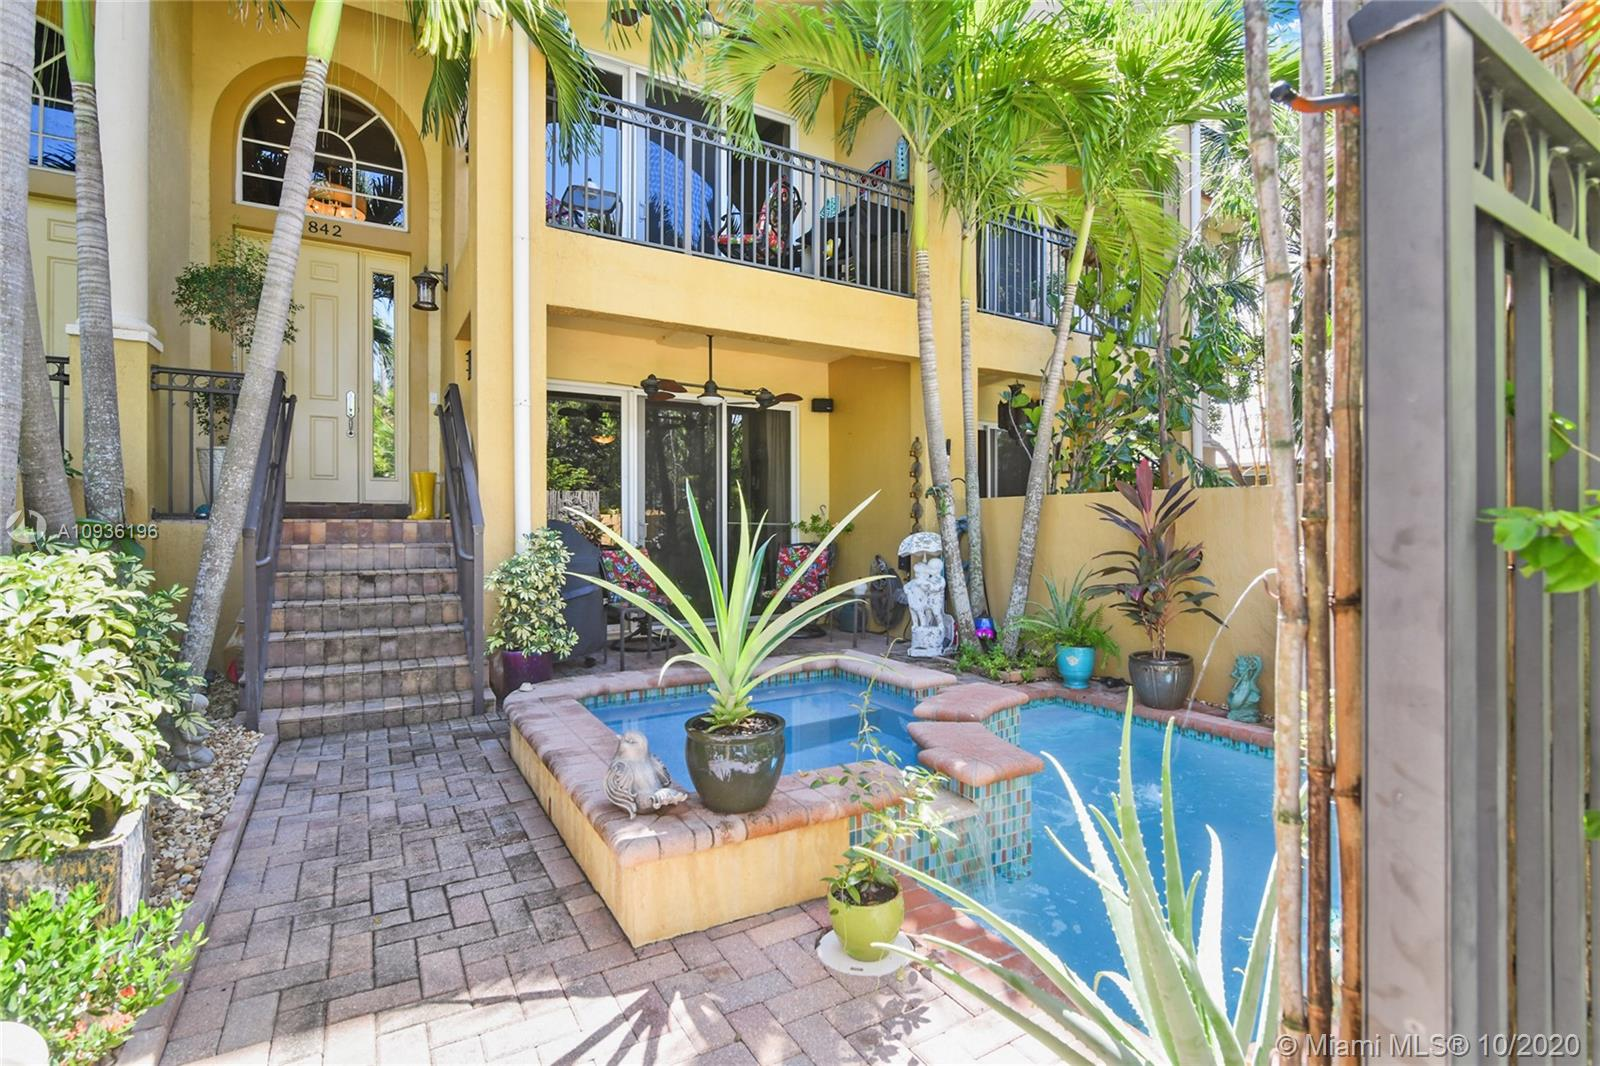 Exquisite Tri-Level Townhome in the heart of Wilton Manors.  This home has been upgraded with magazine quality finishes.  Custom Chefs kitchen featuring Samsung appliances, quartz countertops, center island and an abundance of cherry cabinets.  Formal dining room and living room features a balcony overlooking the private pool and spa.  Stunning master suite with oversized walk in closets, walk in spa quality shower, jetted tub and private balcony.  Second bedroom also offers a private suite.  The third bedroom is perfect for guests offering a bar, full bathroom, mini kitchenette and views of the courtyard.  Oversized 2 car garage!  Fee Simple and low HOA fee!  Located on a quiet street, yet just 1 block to Wilton Drive.  Impeccably maintained and a must see! Owner is a Licensed Agent.